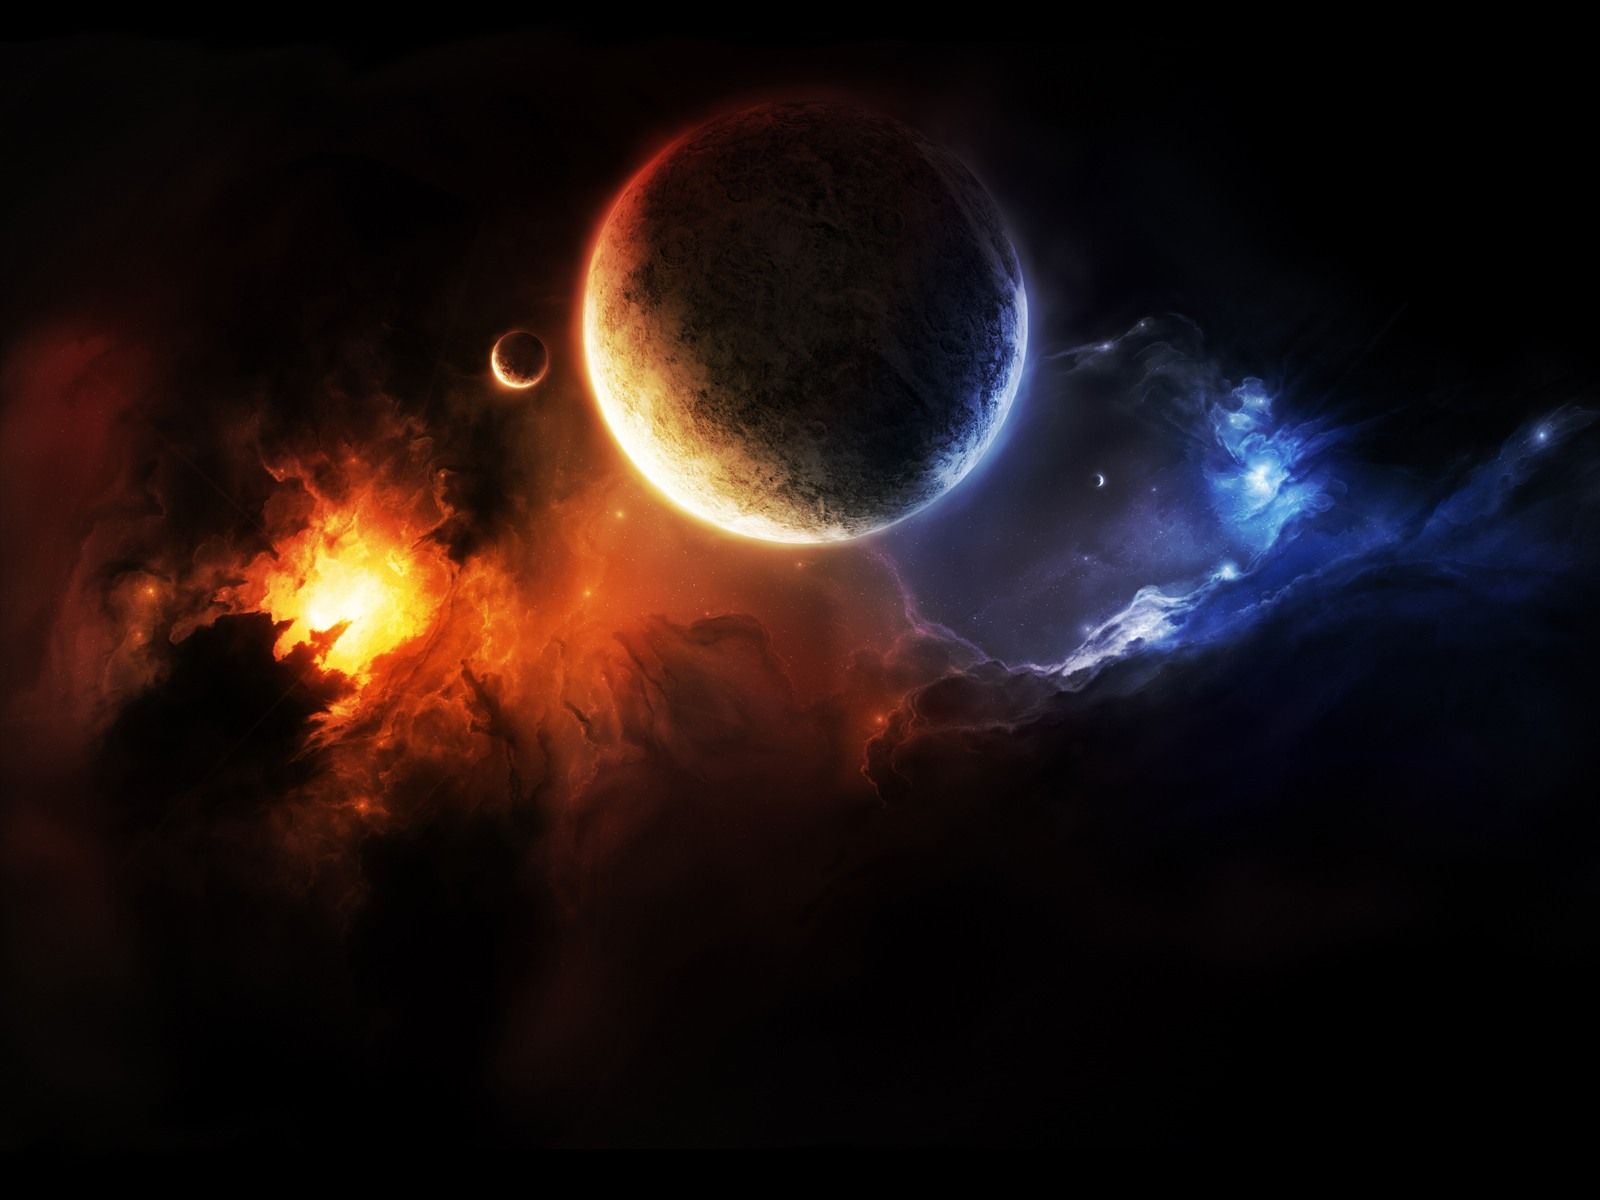 Free hd space desktop wallpaper wallpapersafari - Deep space wallpaper hd ...